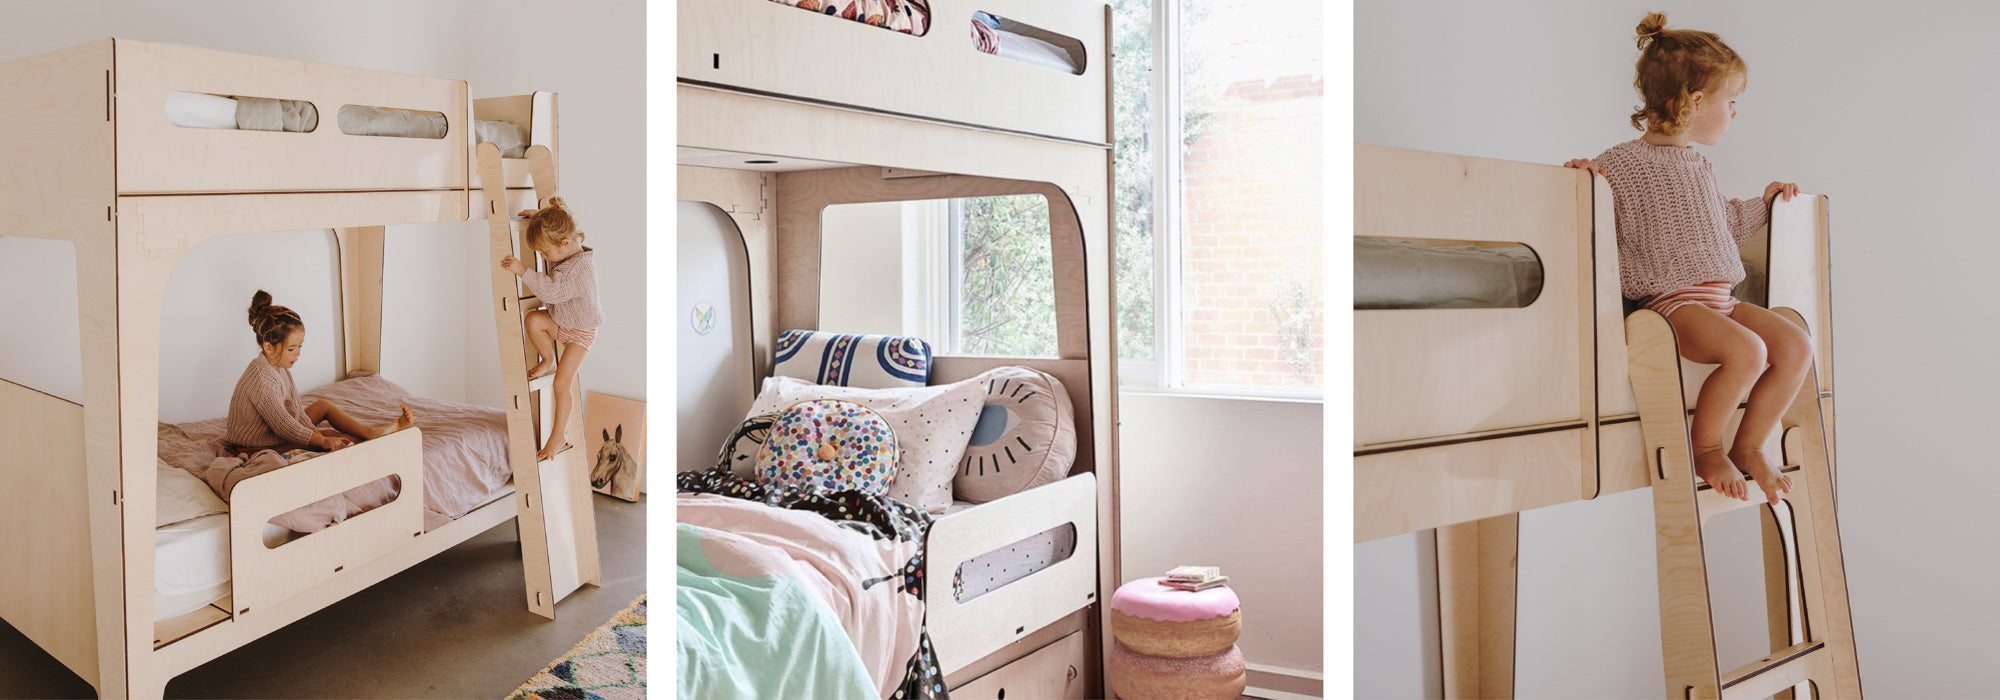 Modern children's furniture and loft beds in Melbourne